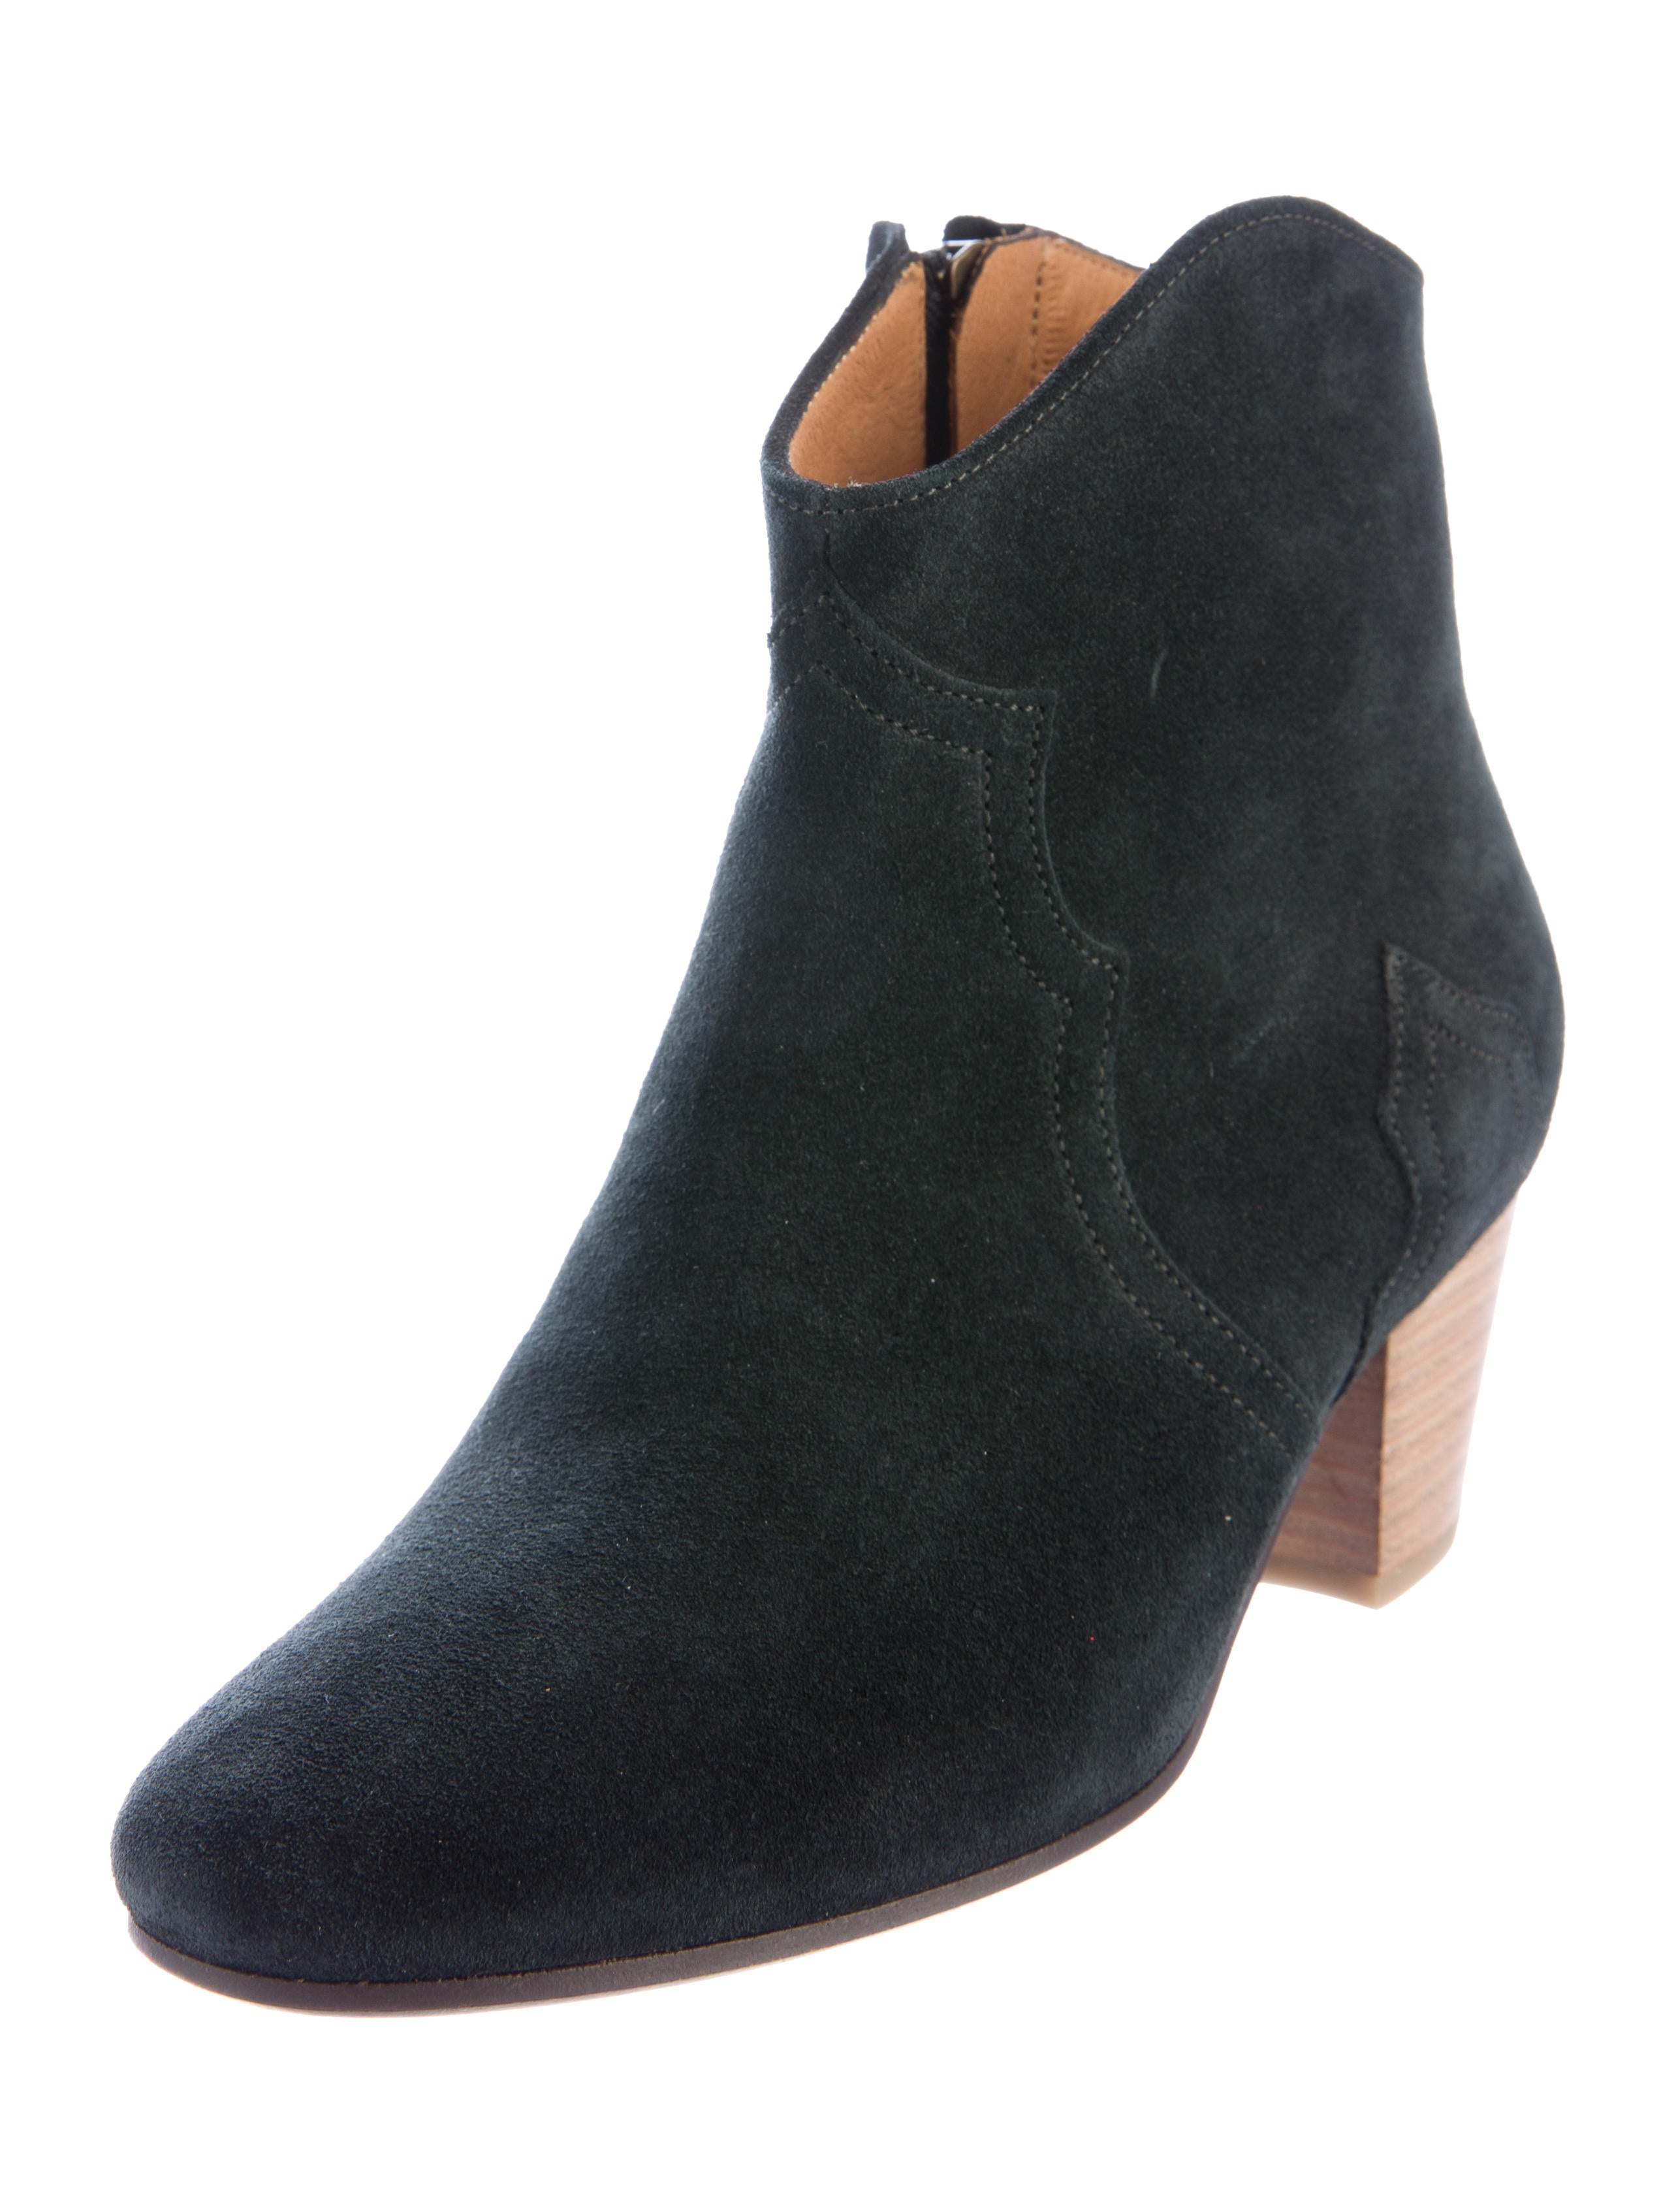 201 toile marant suede dicker ankle boots shoes